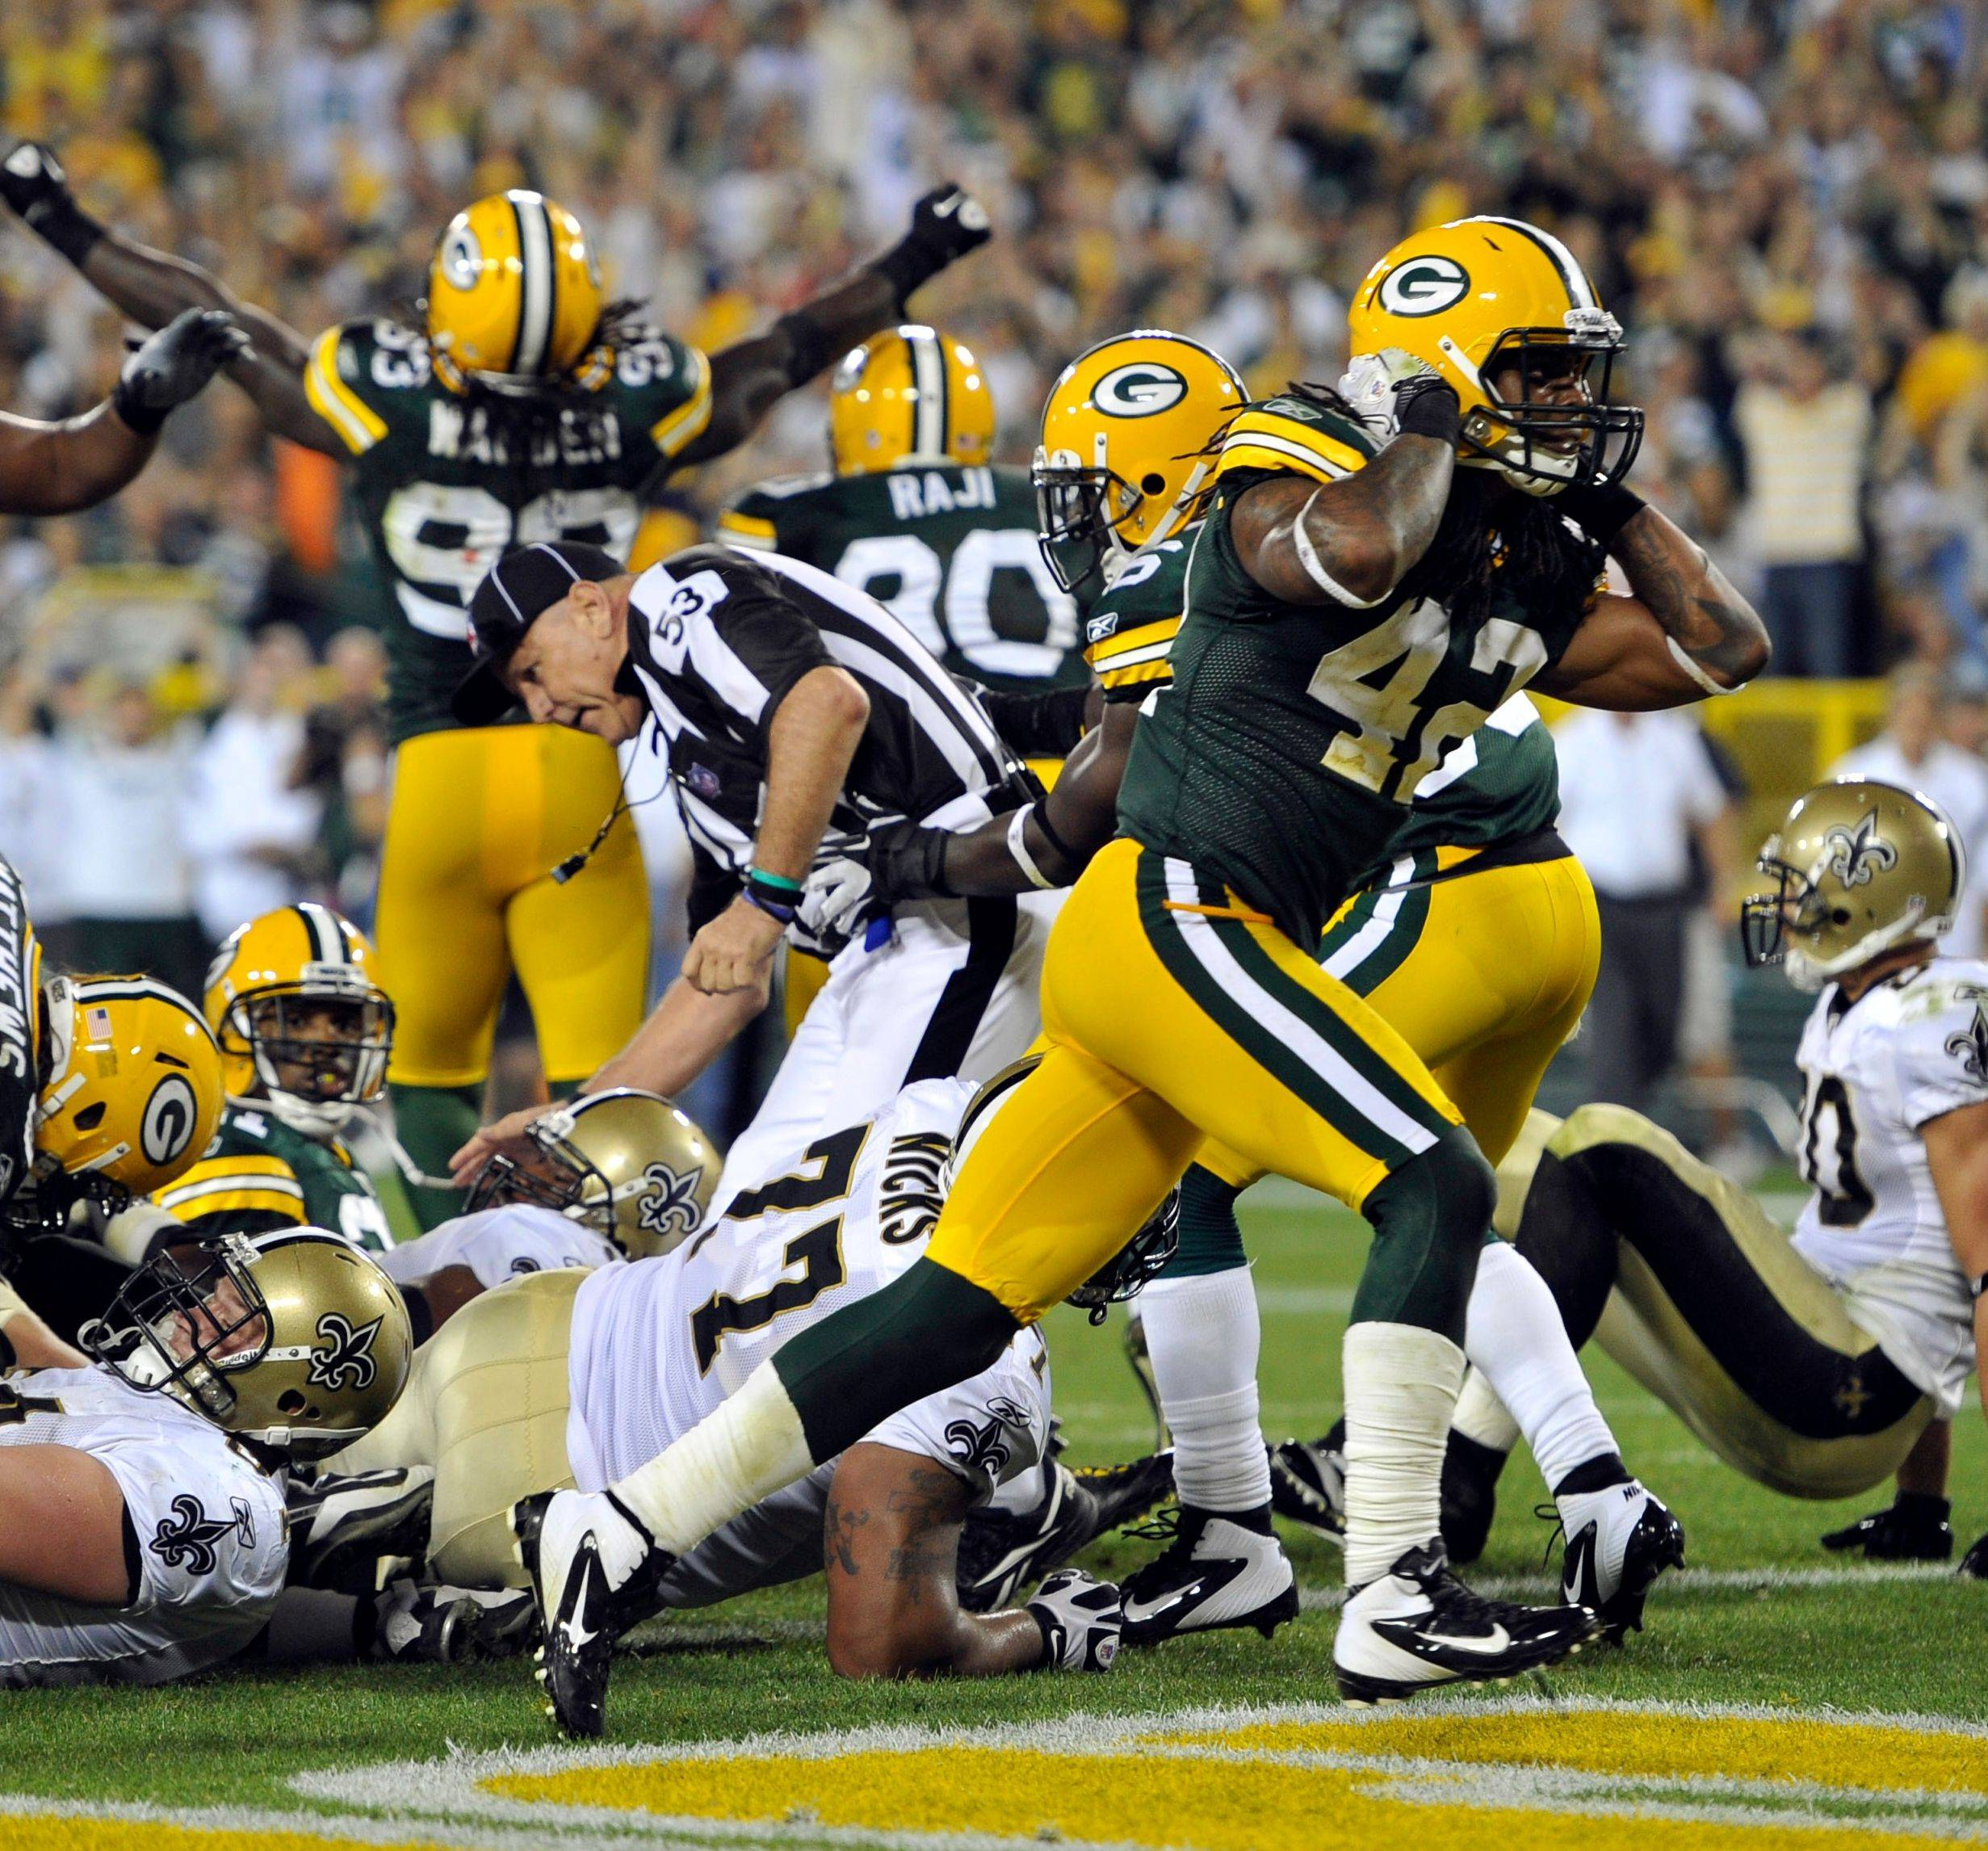 Morgan Burnett reacts after the Packers� defense stopped New Orleans running back Mark Ingram on the last play of the fourth quarter to give the Packers a 42-34 win Thursday night in Green Bay.